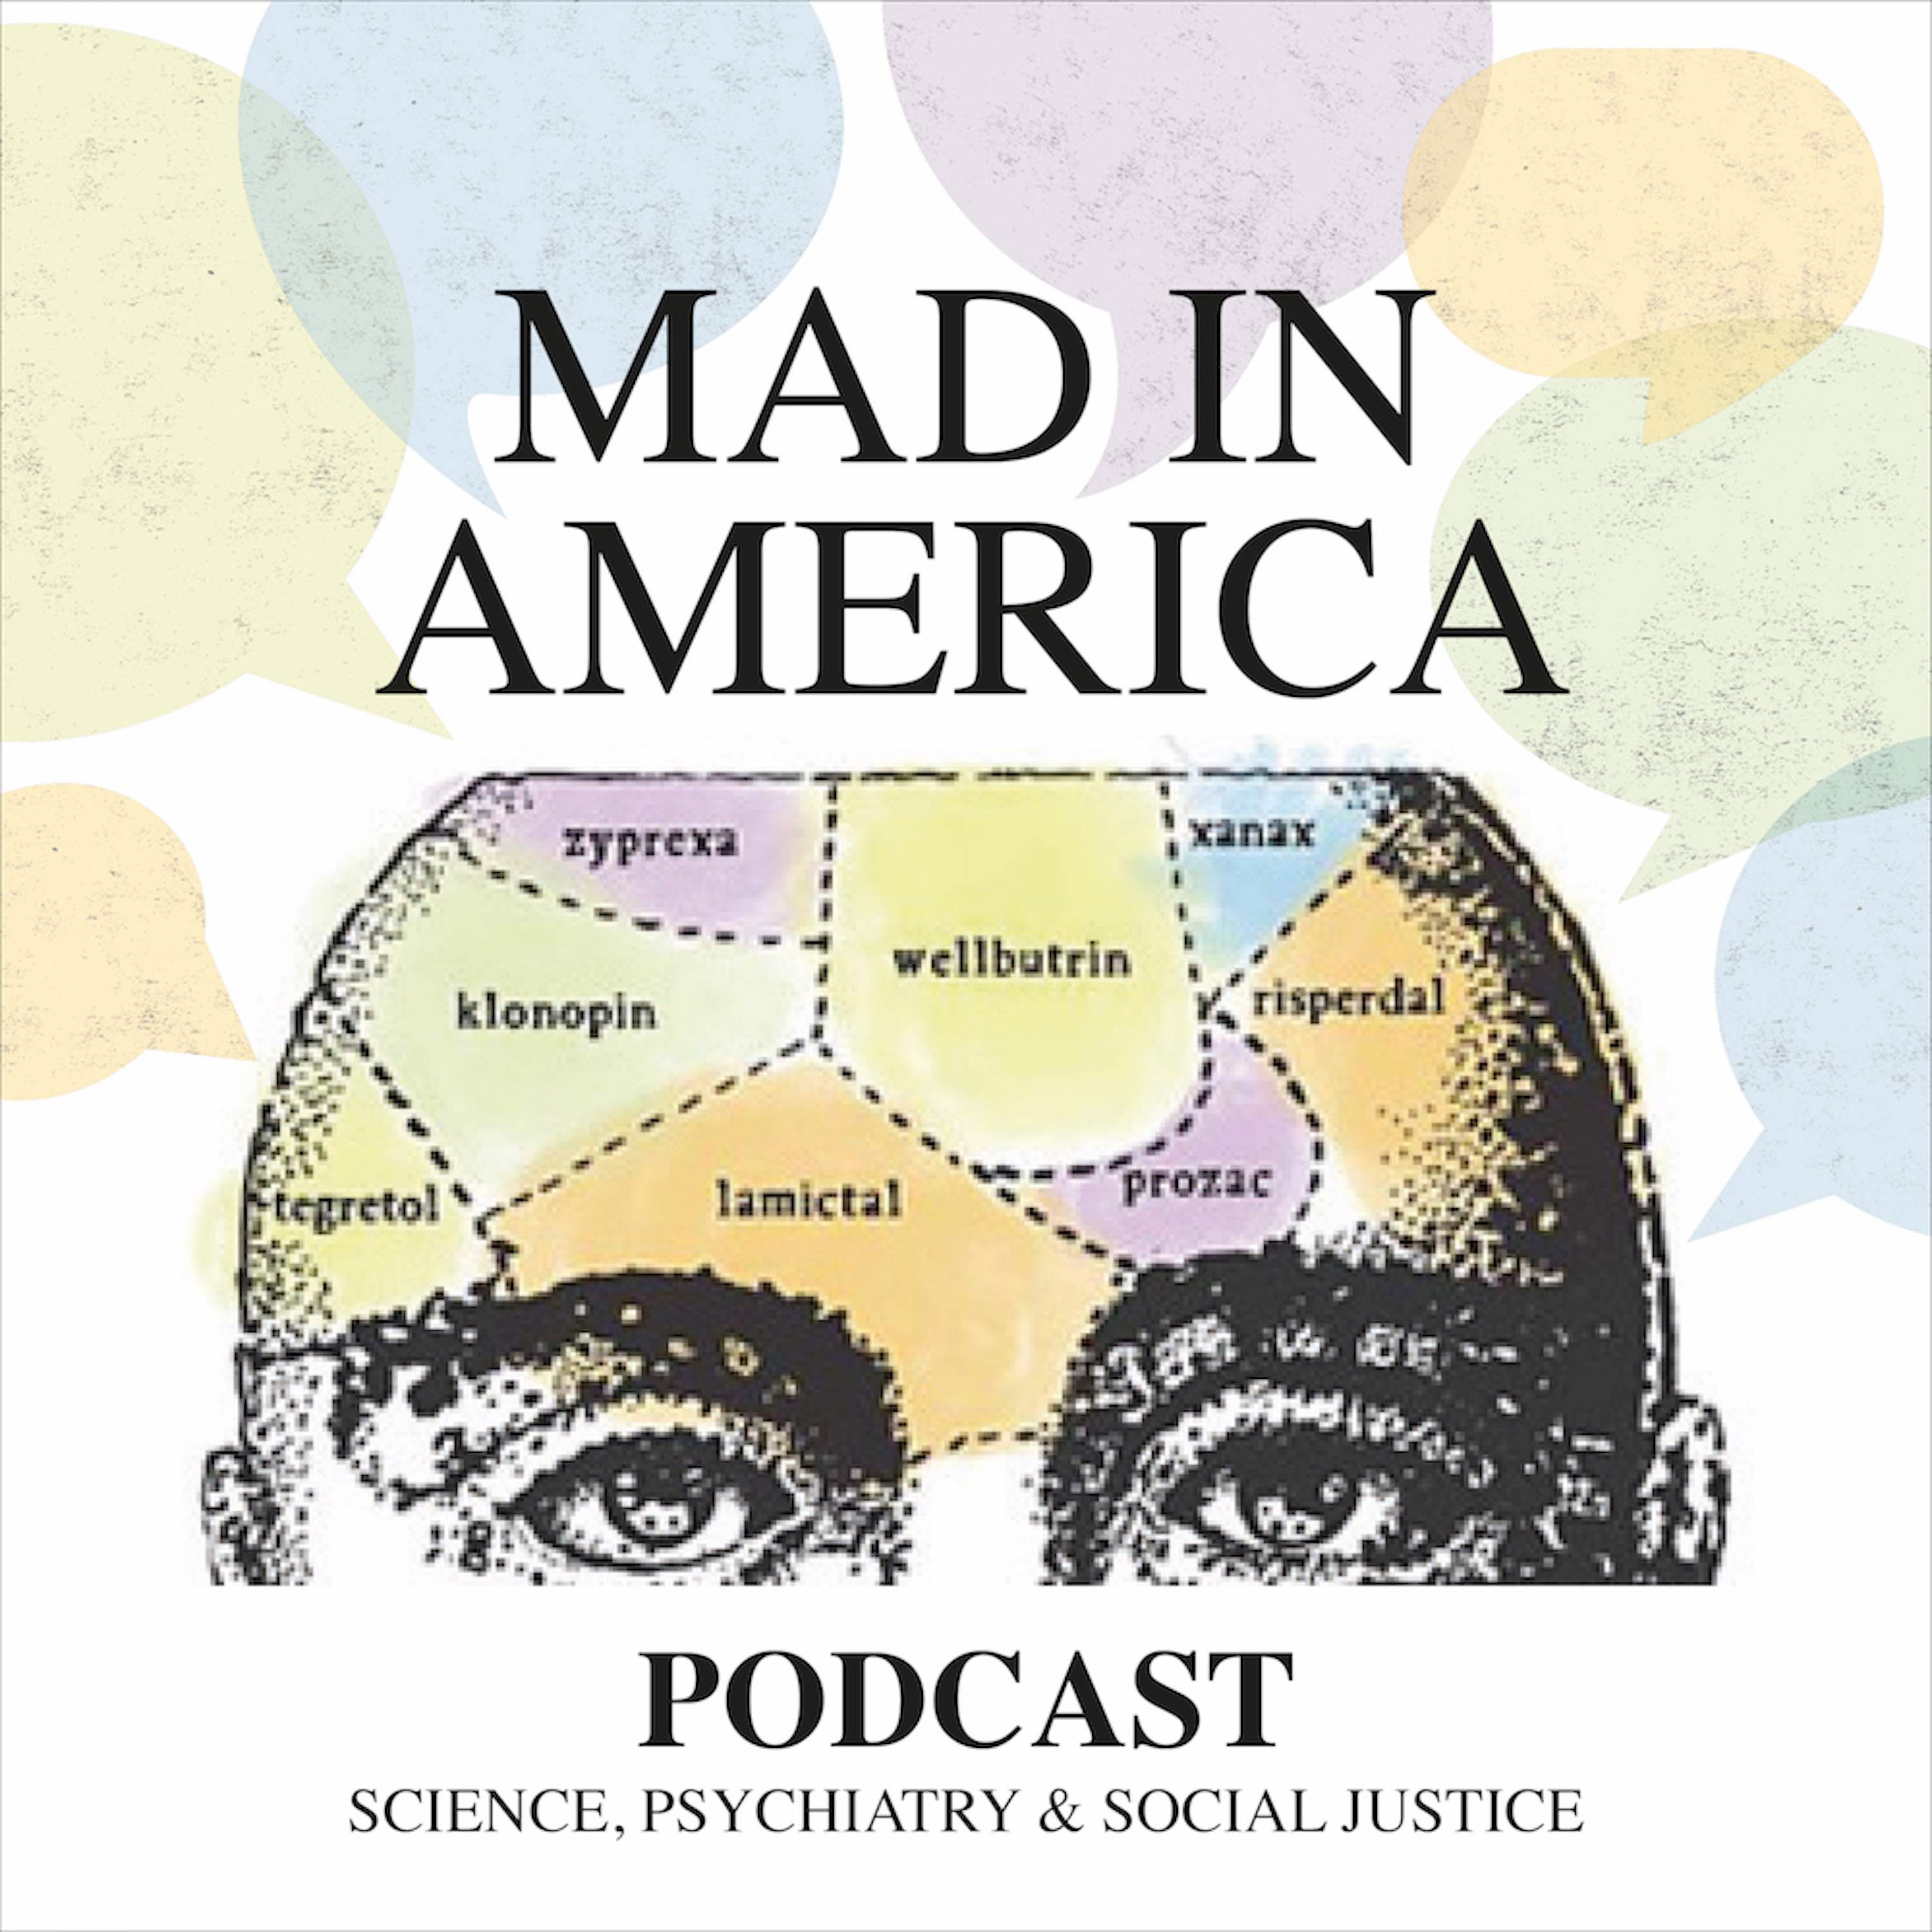 Mad in America: Rethinking Mental Health - Gail Hornstein - First-Person Accounts of Madness and Global Mental Health